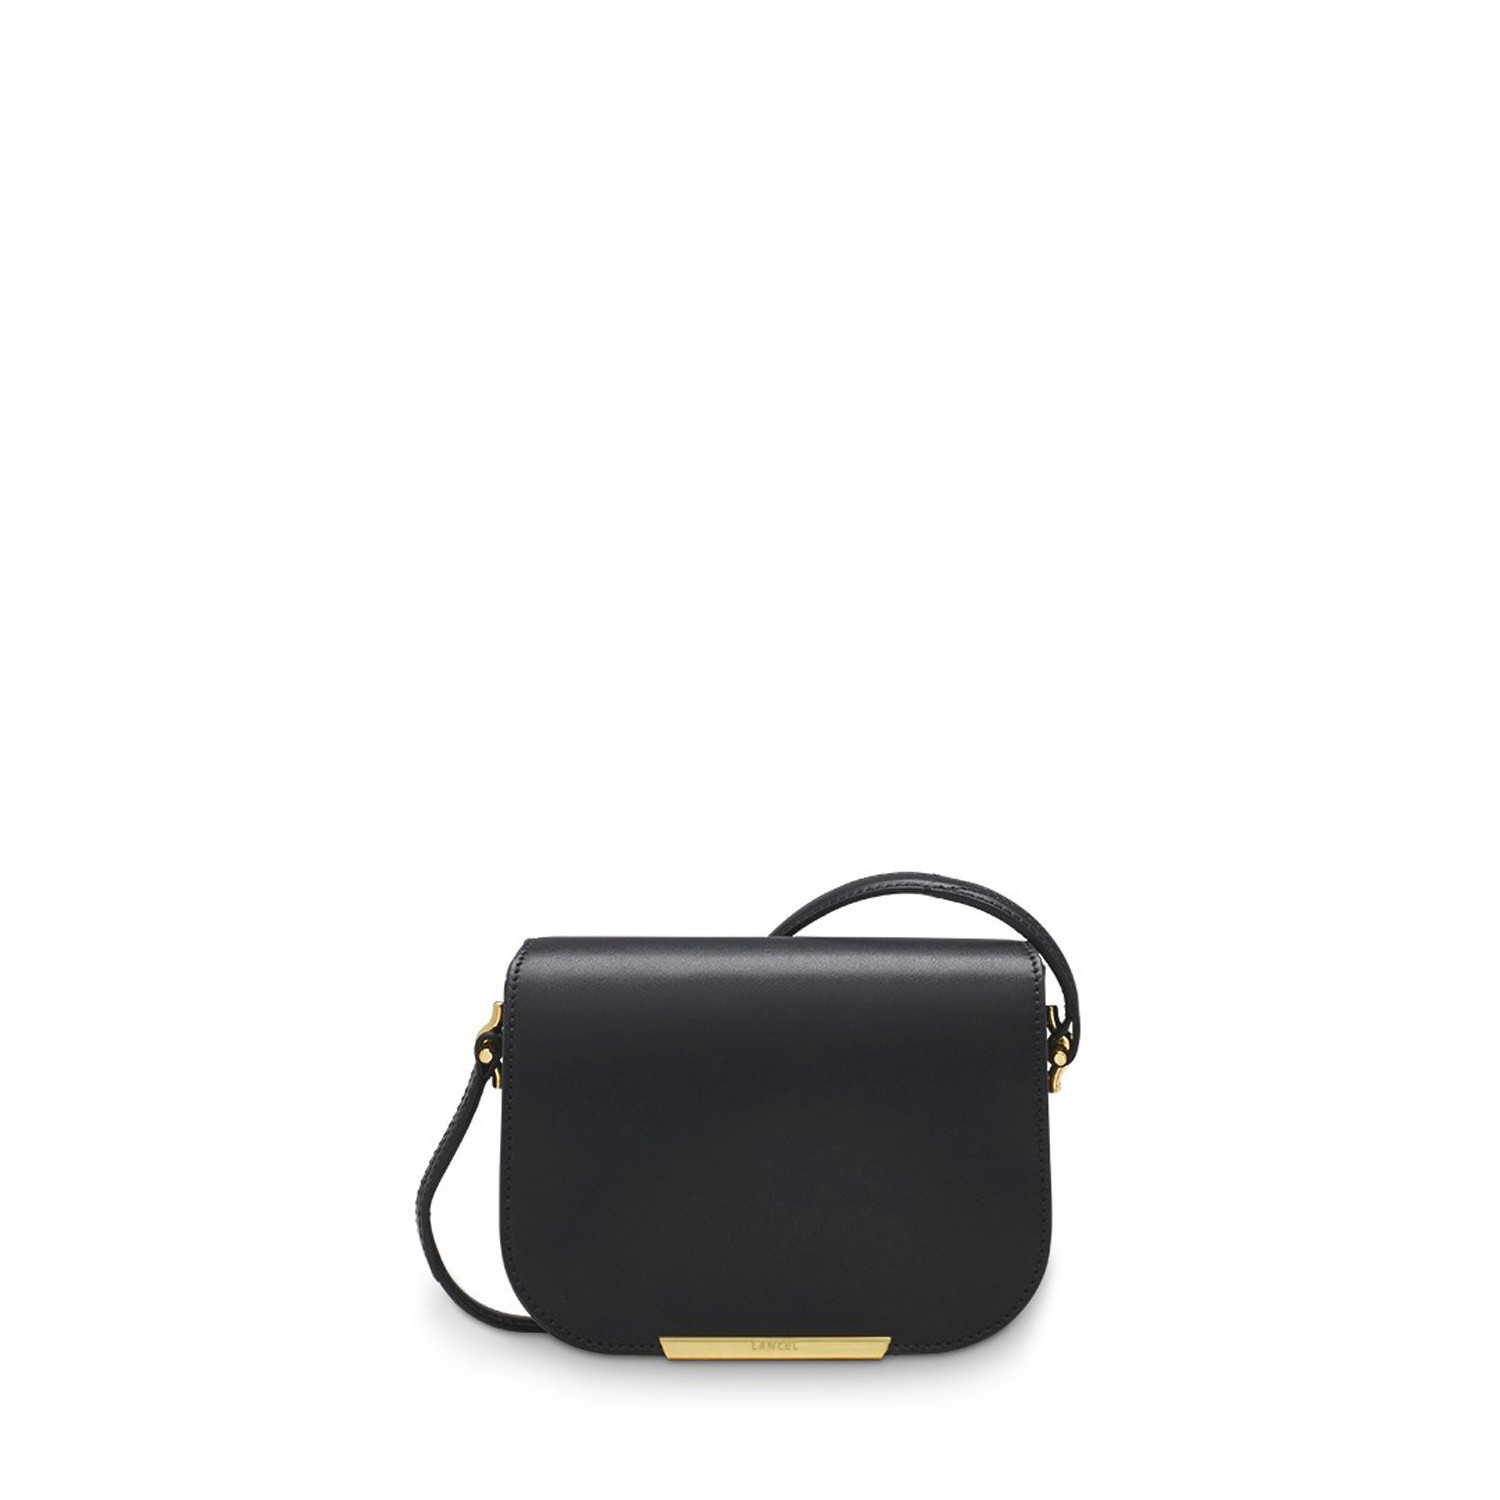 Bianca de Lancel Nano Saddle Bag Black